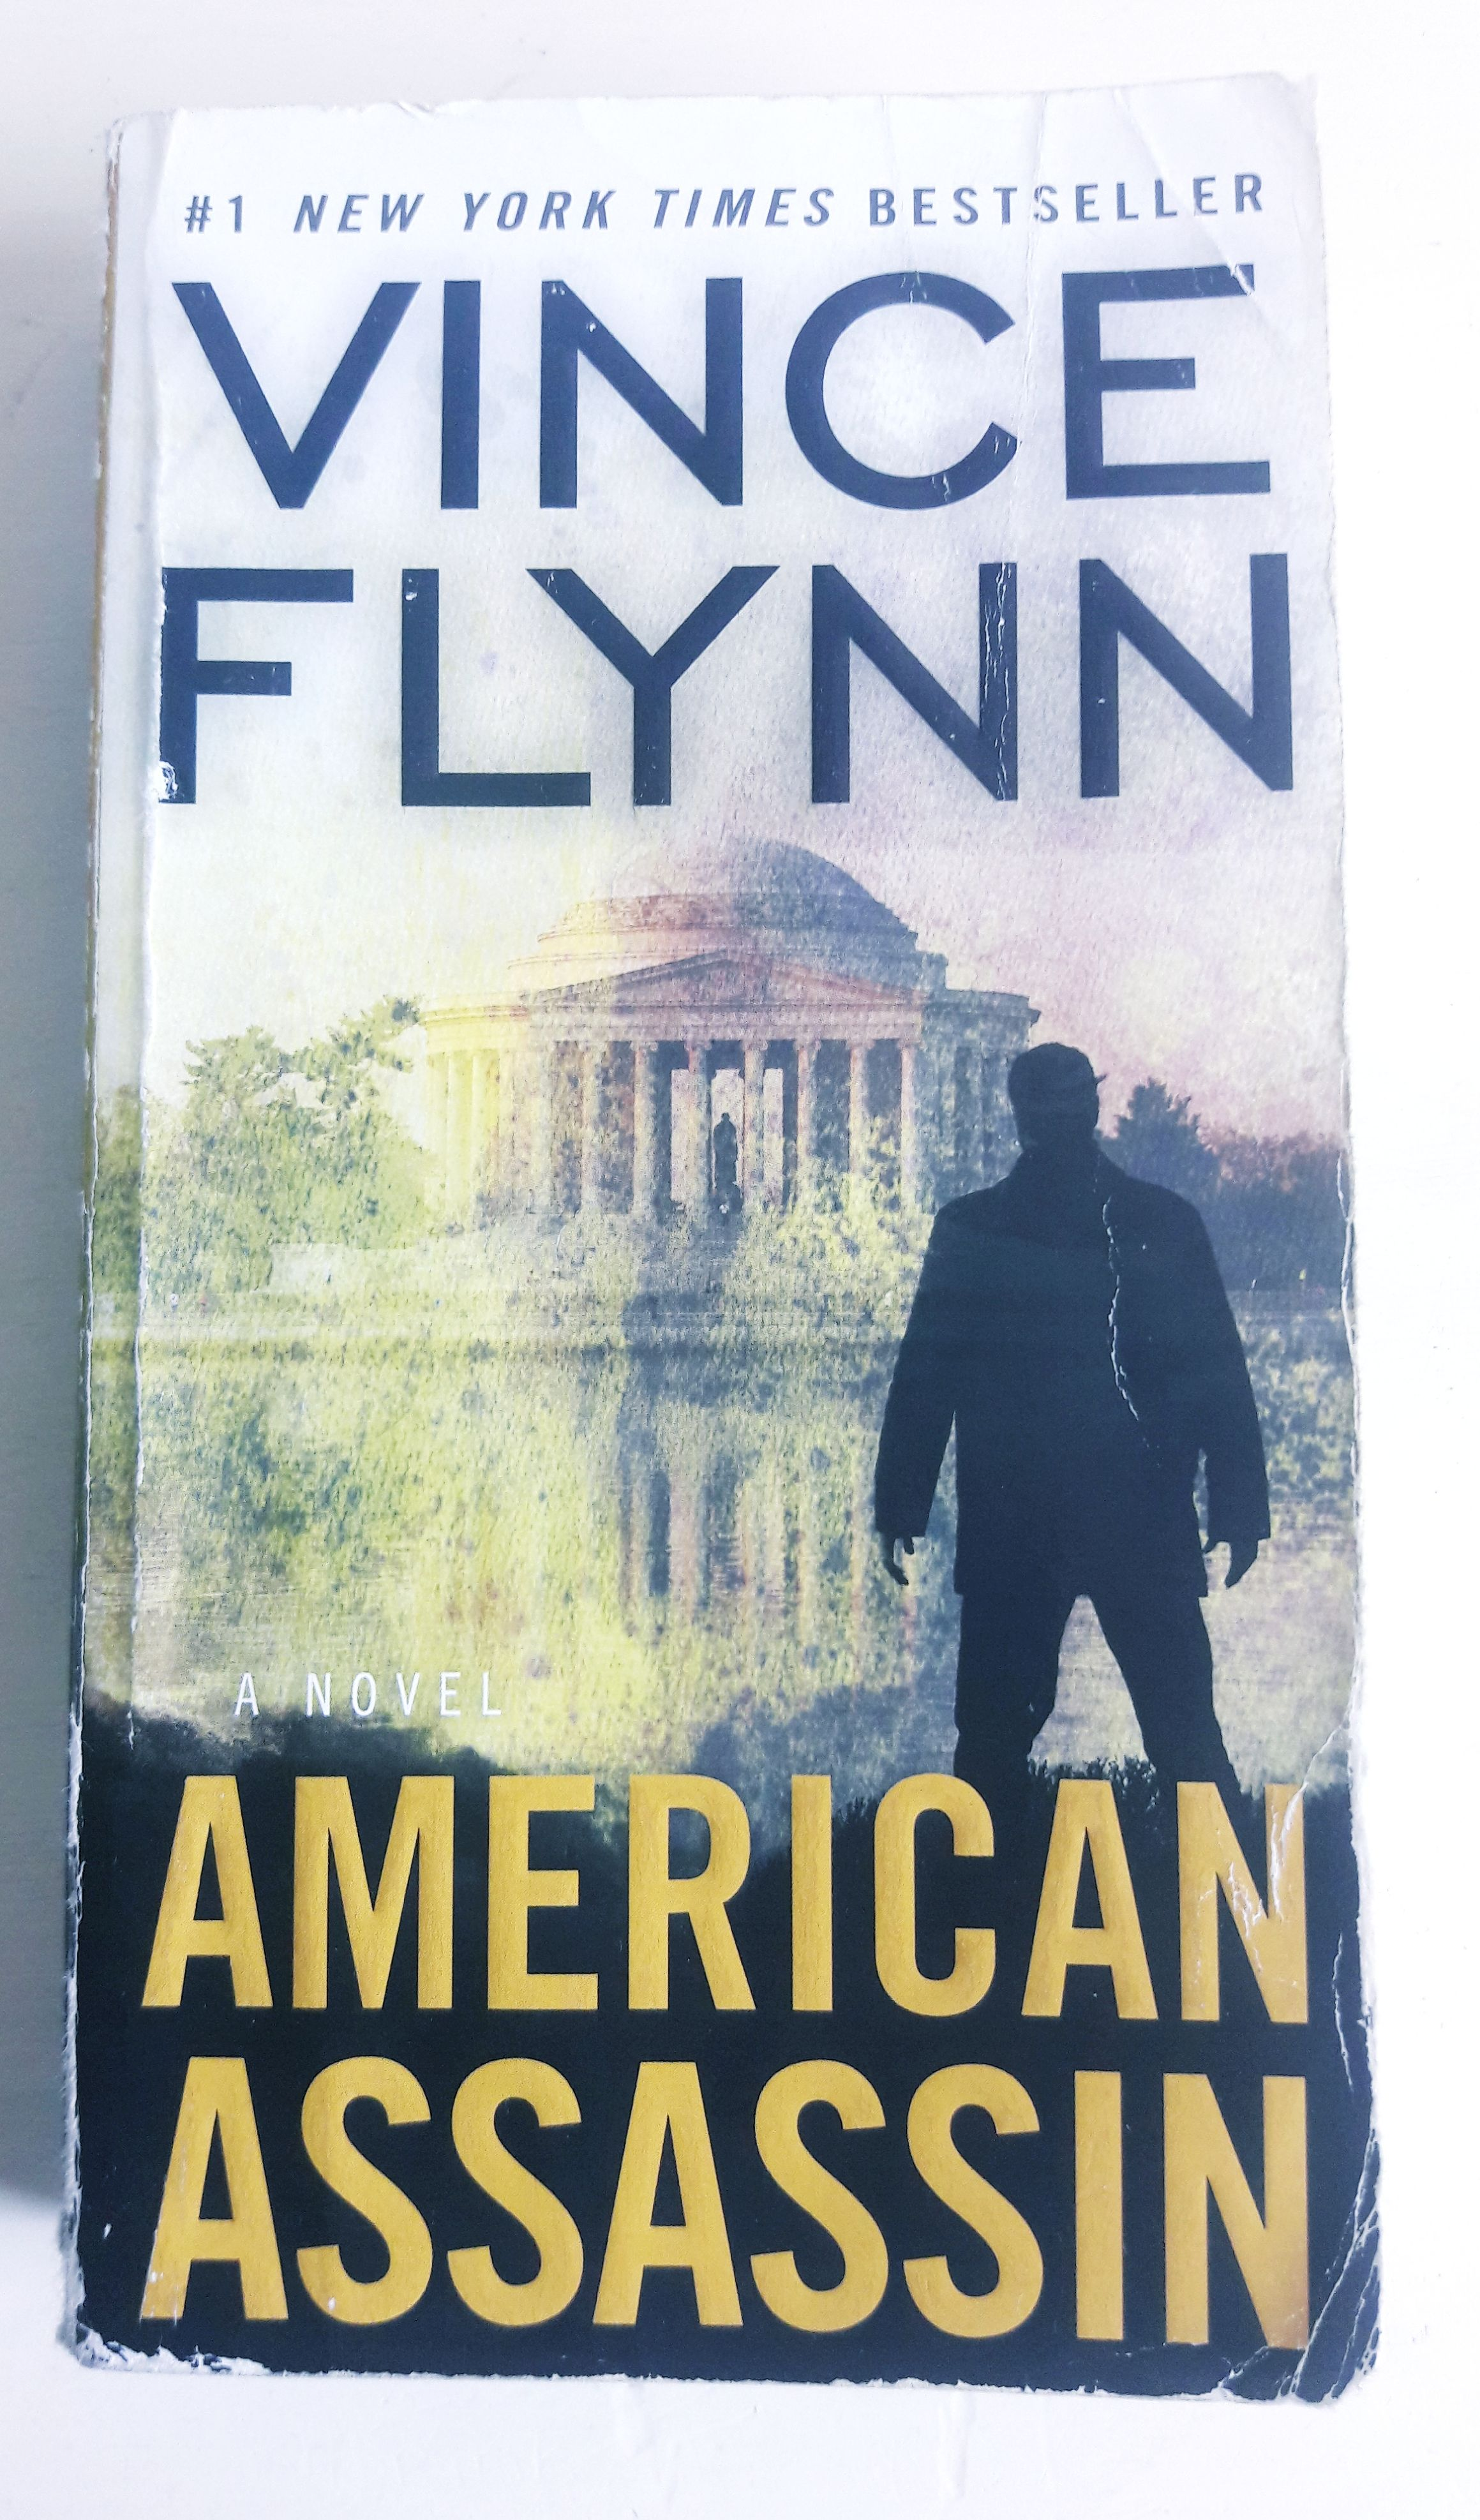 American assassin vince flynn with images vince